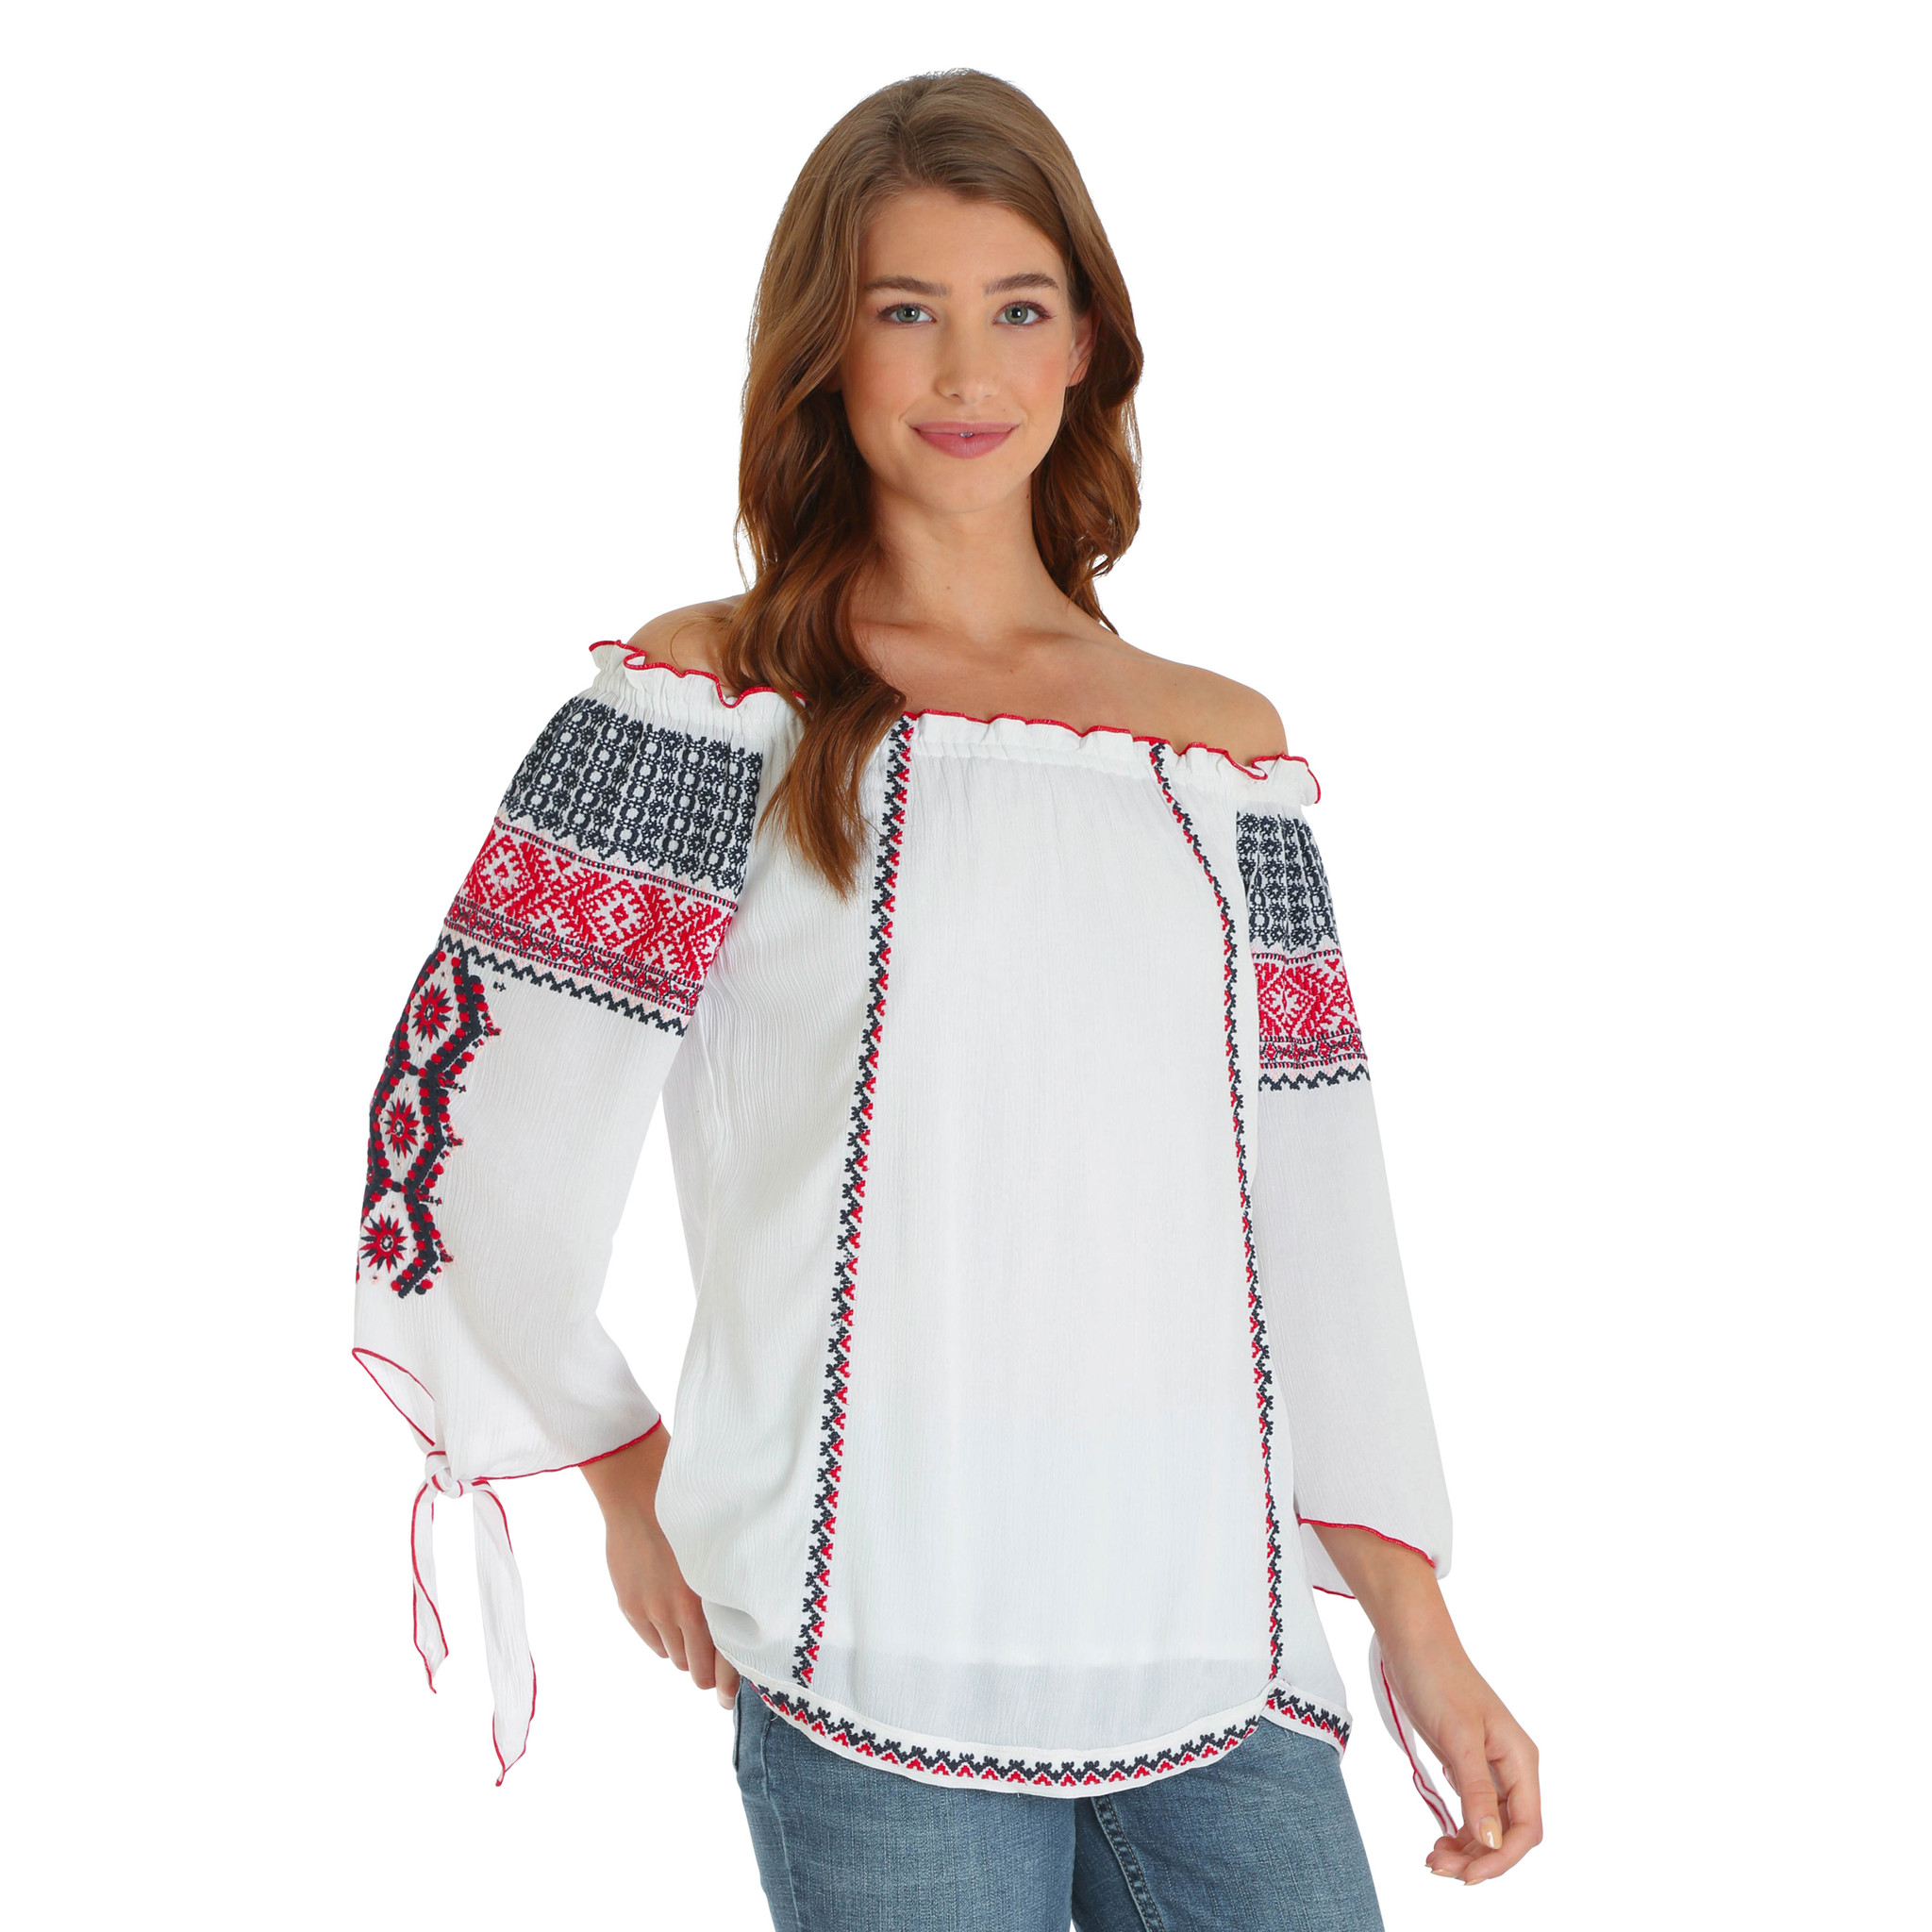 d18adc72635 Women's Wrangler Top, Off Shoulder, Ivory with Embroidery - Chick Elms  Grand Entry Western Store and Rodeo Shop